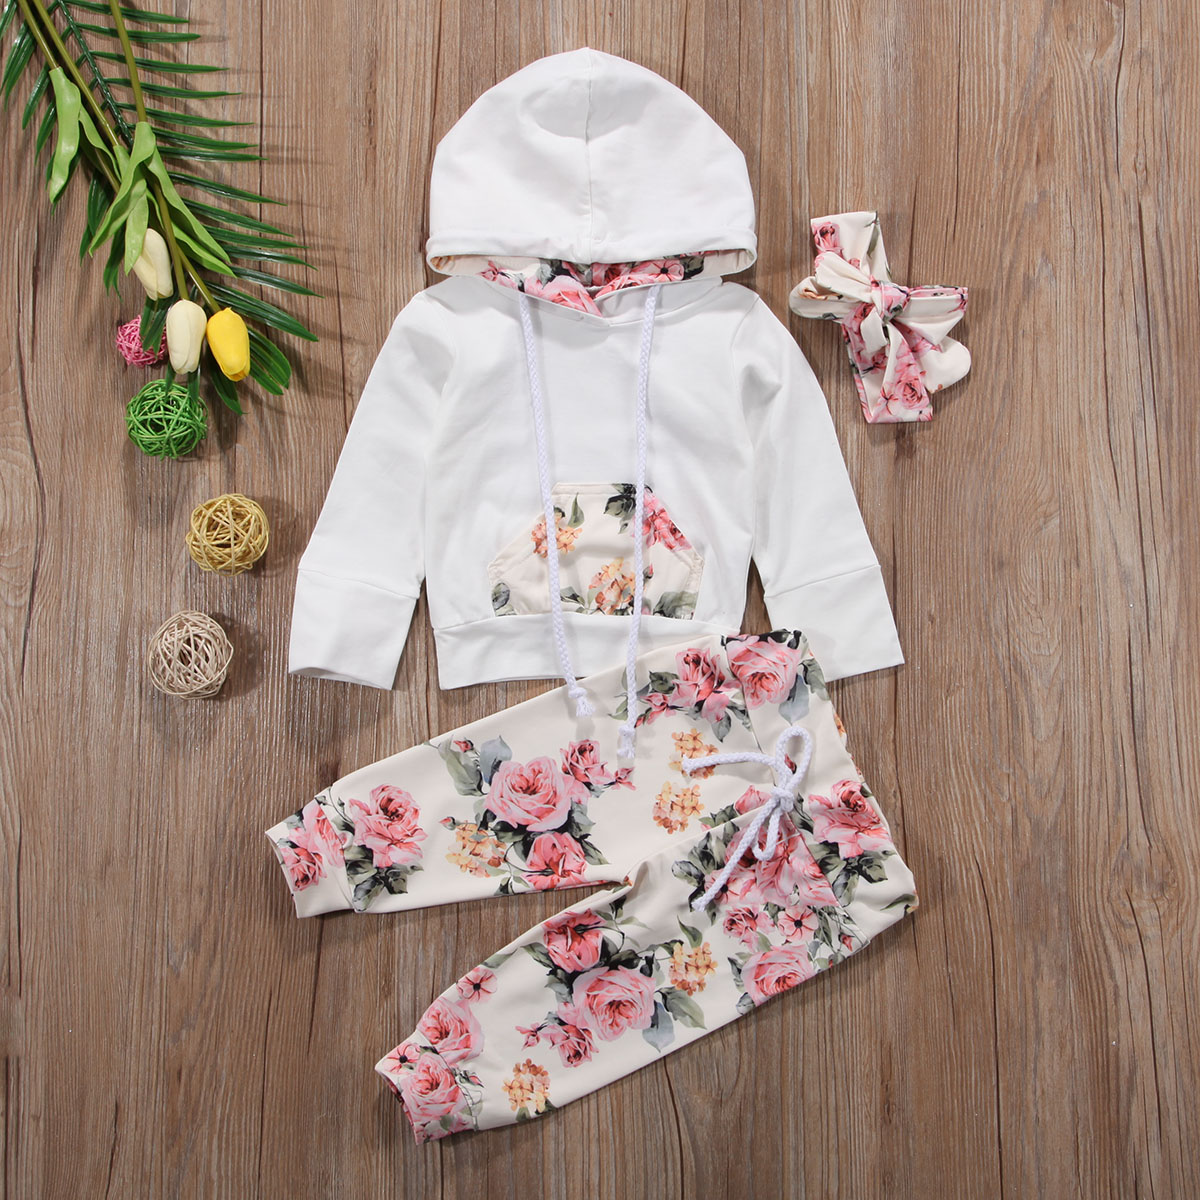 Spring Newborn Baby Girls Sport Outfits Clothes Fashion Sweet Floral Sweat Shirt Hoodies+Pants Holiday Casual Party Set AU